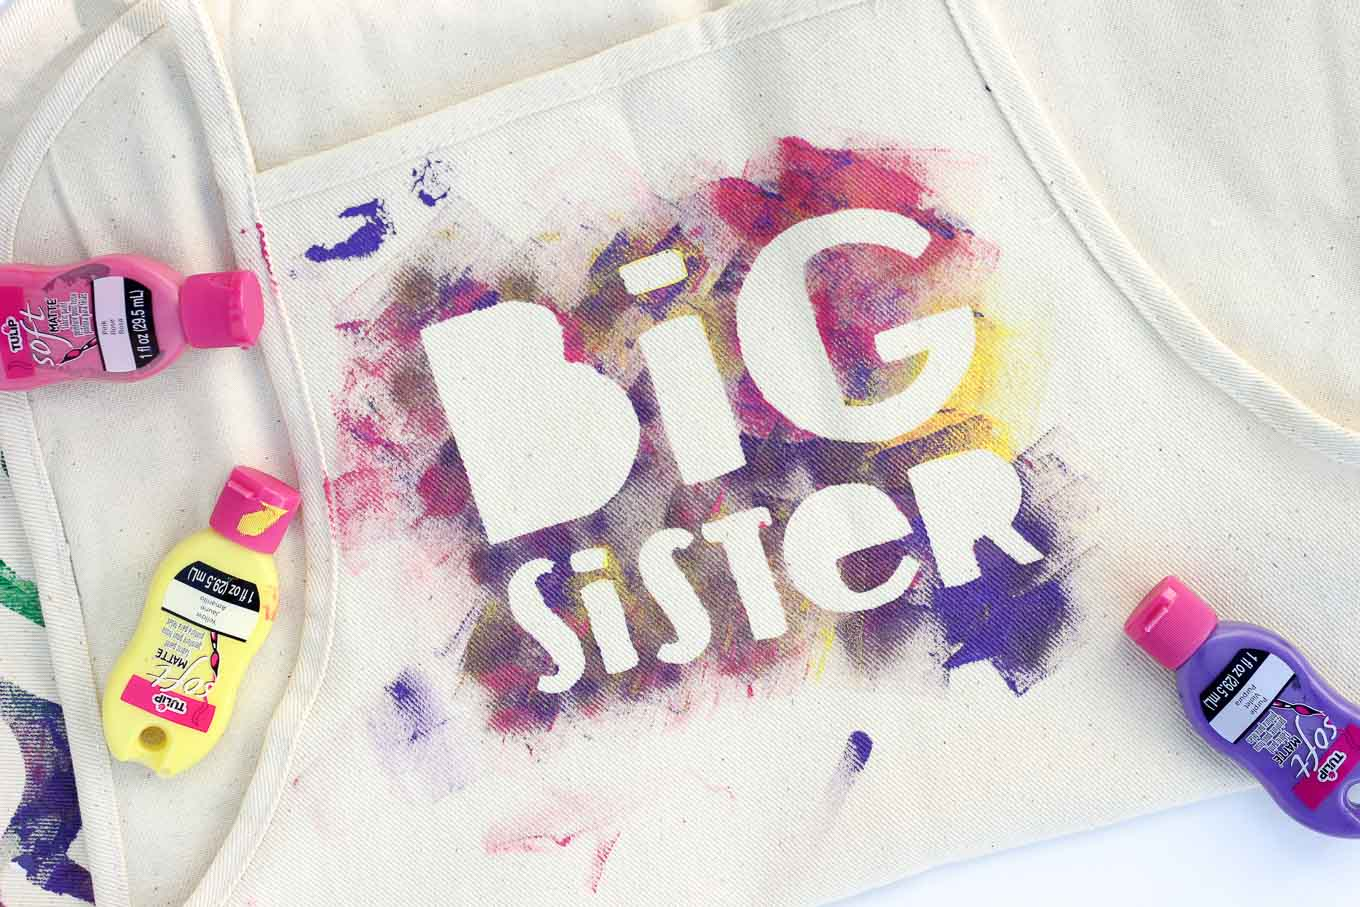 """This easy kids craft is an awesome way to prepare older siblings for their new role as the """"helper"""" in the family before a new baby arrives. The DIY apron also makes a great big brother / big sister gift idea kids can make themselves. Free template! 